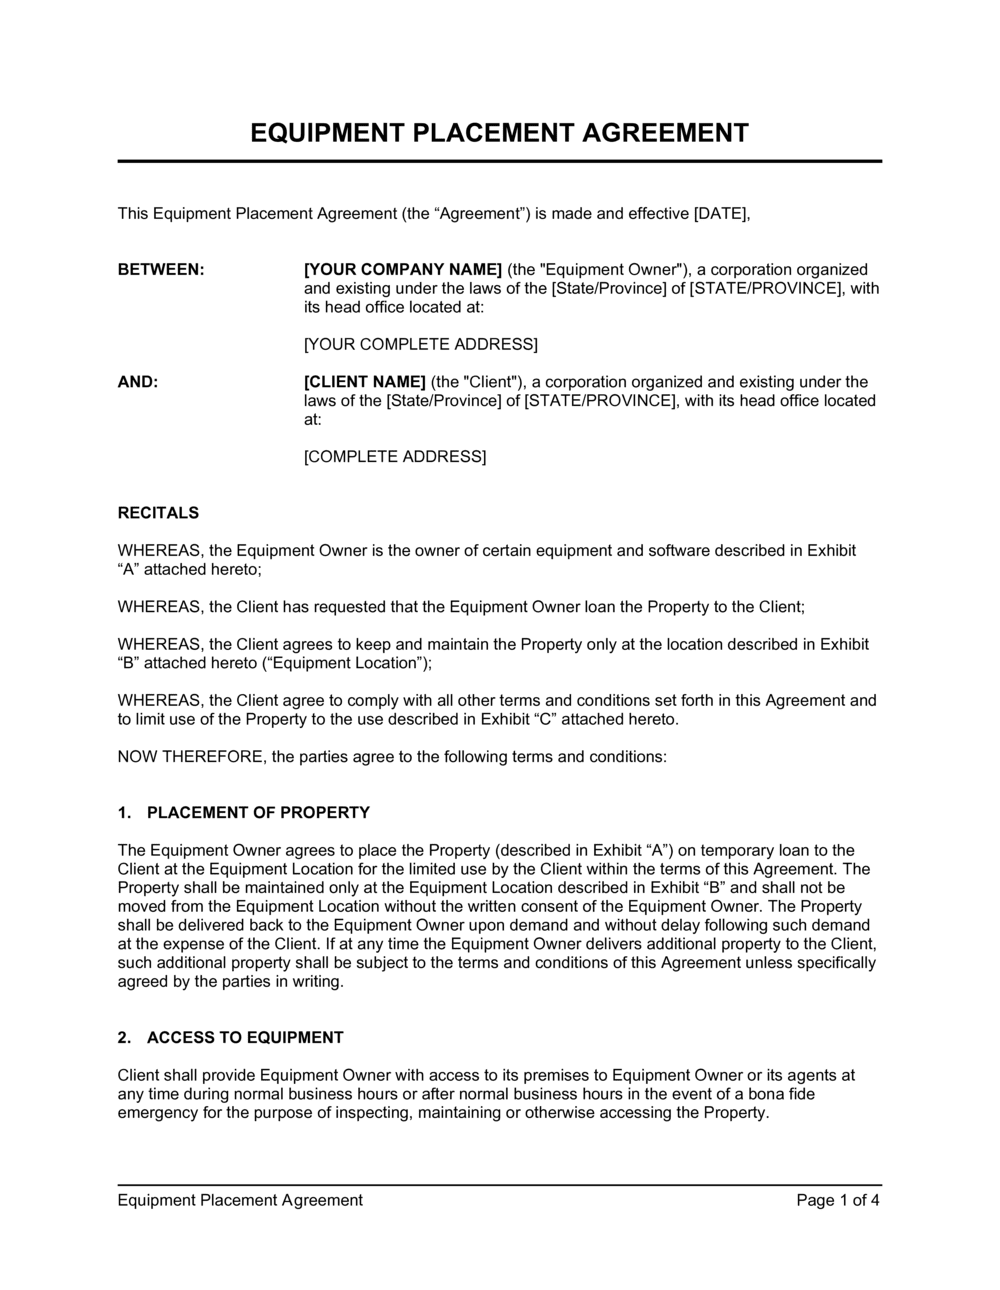 Business-in-a-Box's Equipment Placement Agreement Template